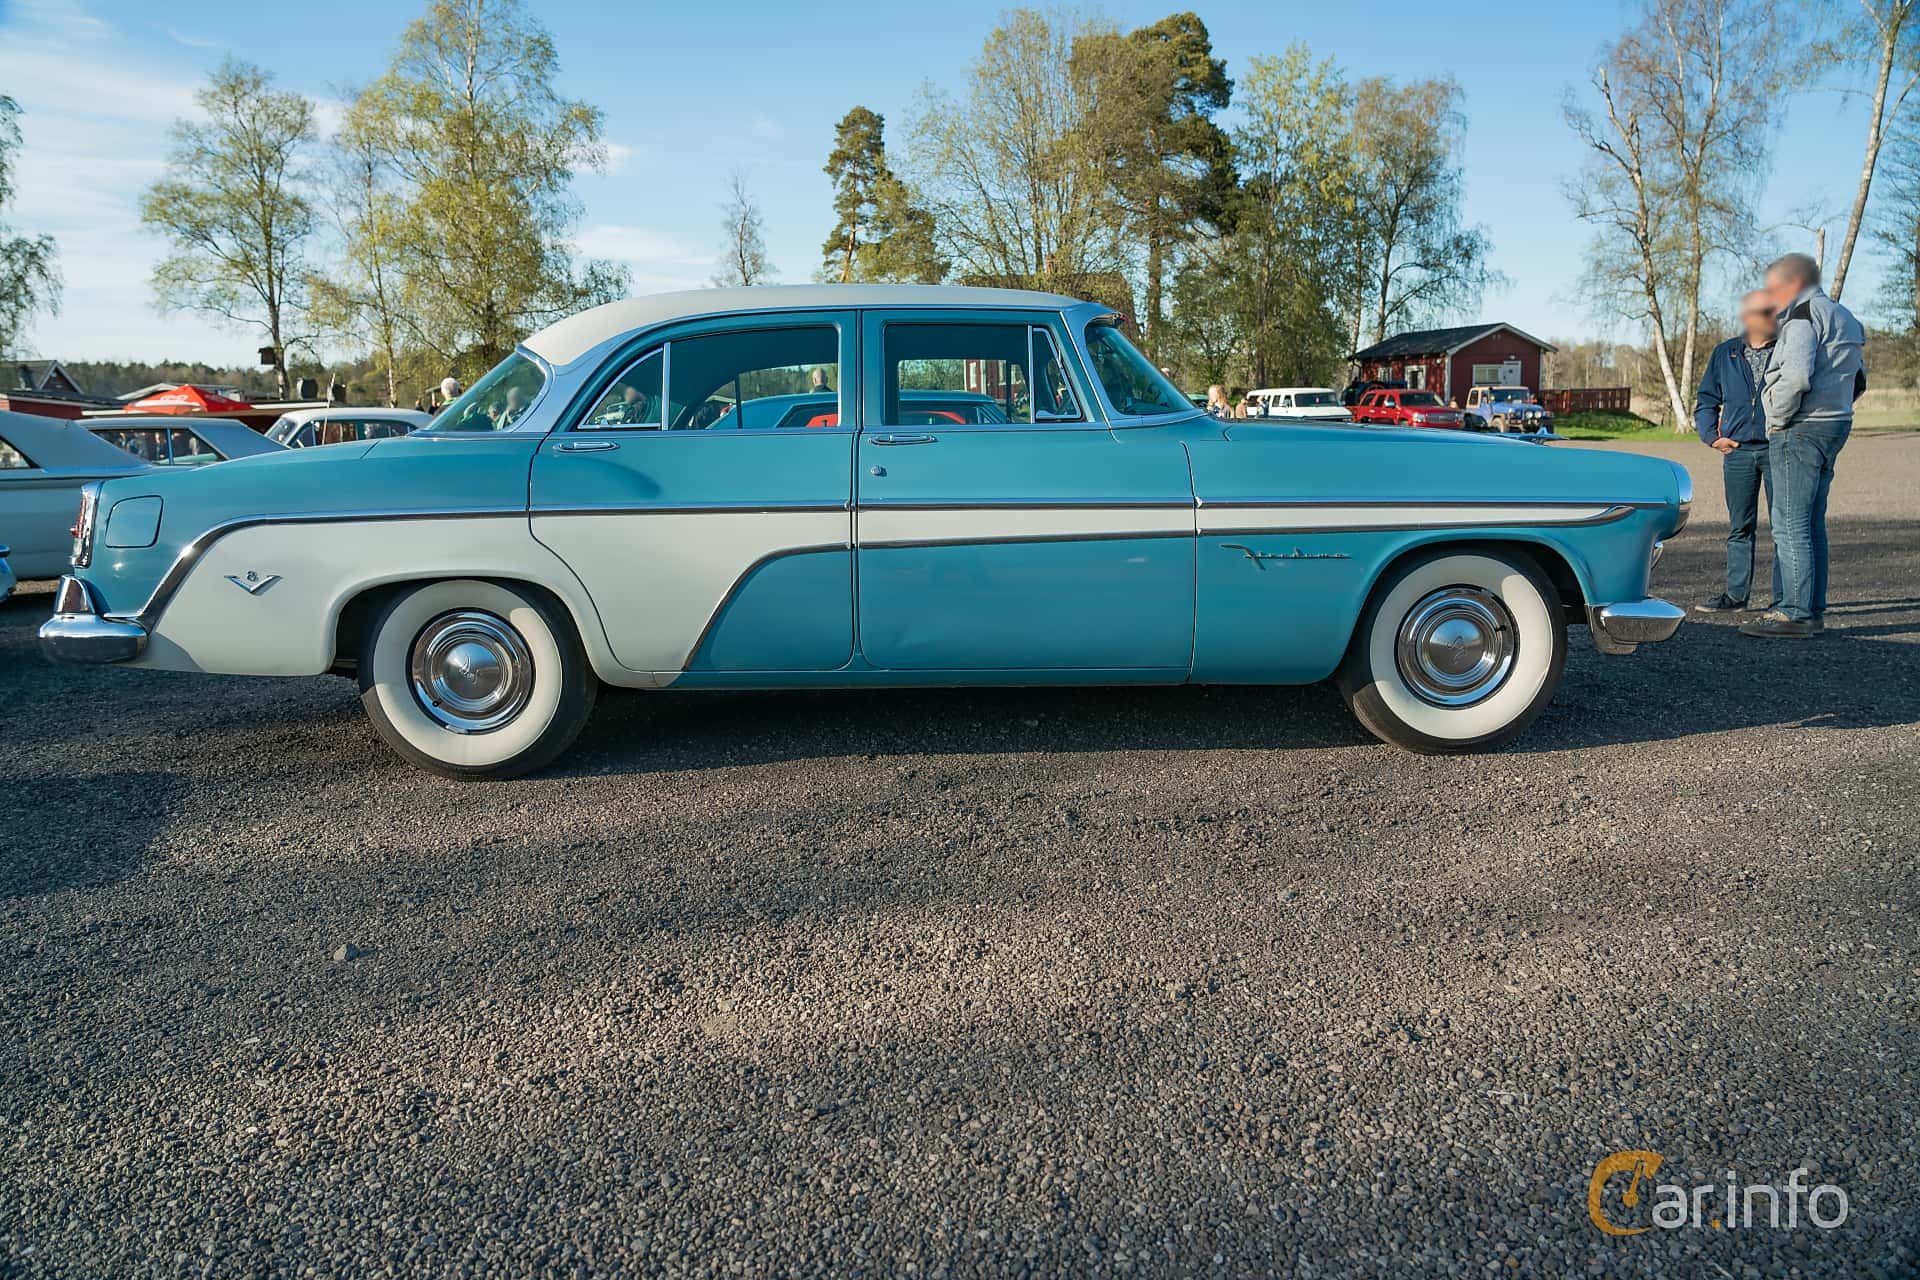 DeSoto Firedome Sedan 4.5 V8 Automatic, 188hp, 1955 at Lissma Classic Car 2019 vecka 20